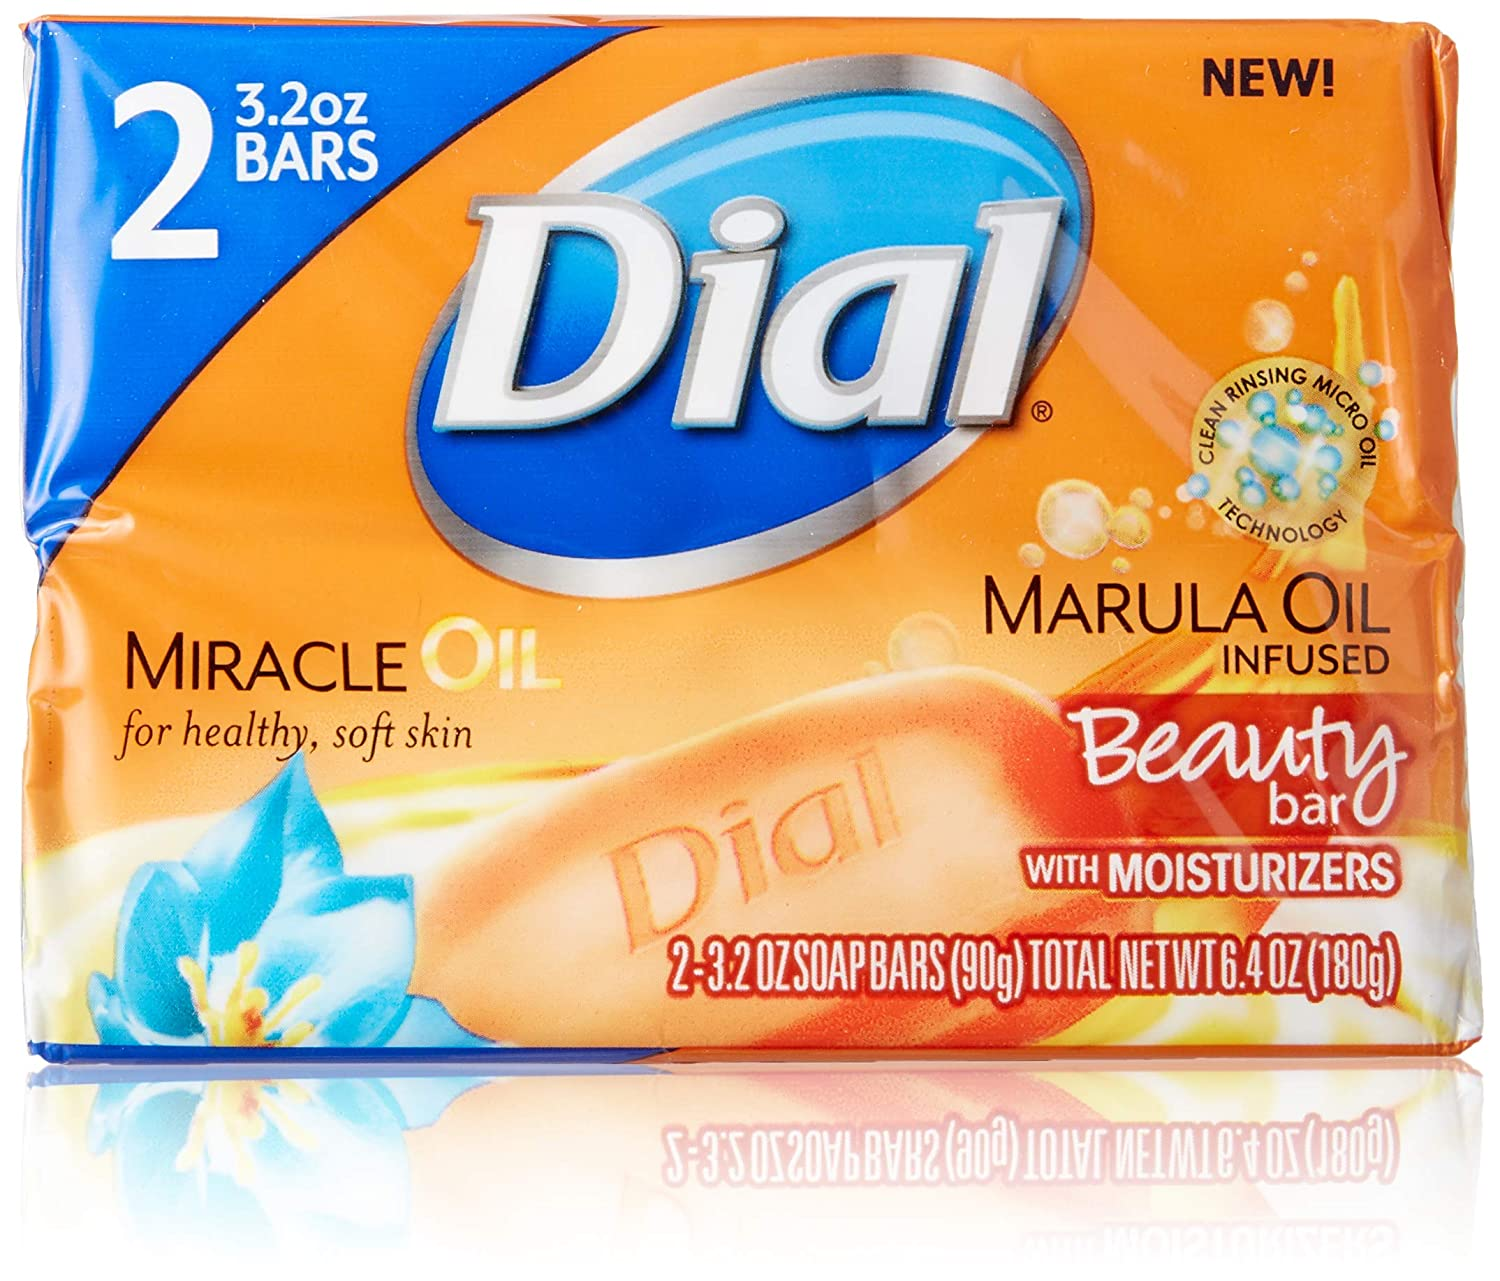 Dial Miracle Oil Bar Soap - 2 (3.2 oz.) Bars with Marula Oil